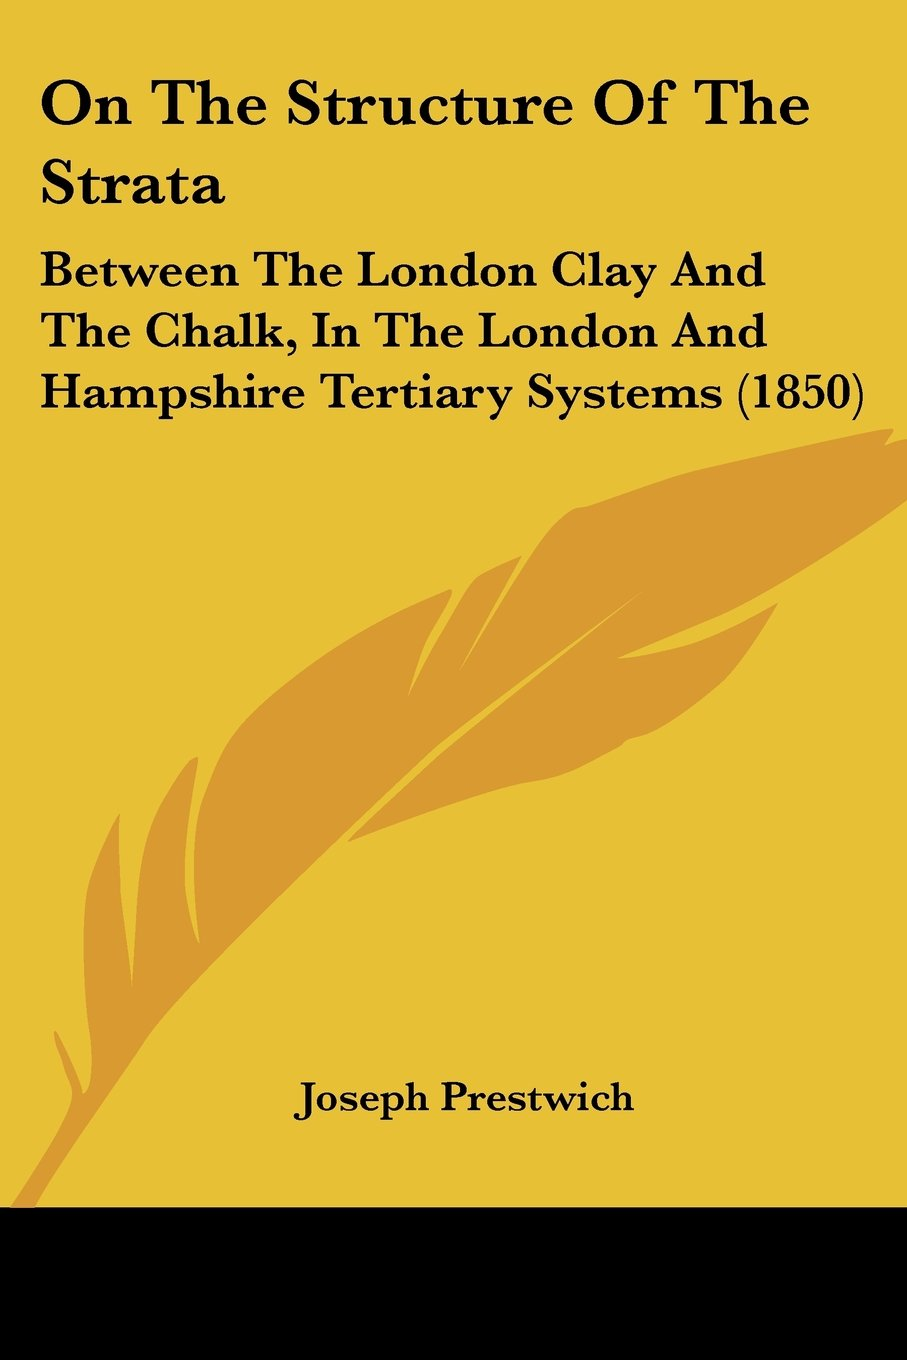 Read Online On The Structure Of The Strata: Between The London Clay And The Chalk, In The London And Hampshire Tertiary Systems (1850) PDF